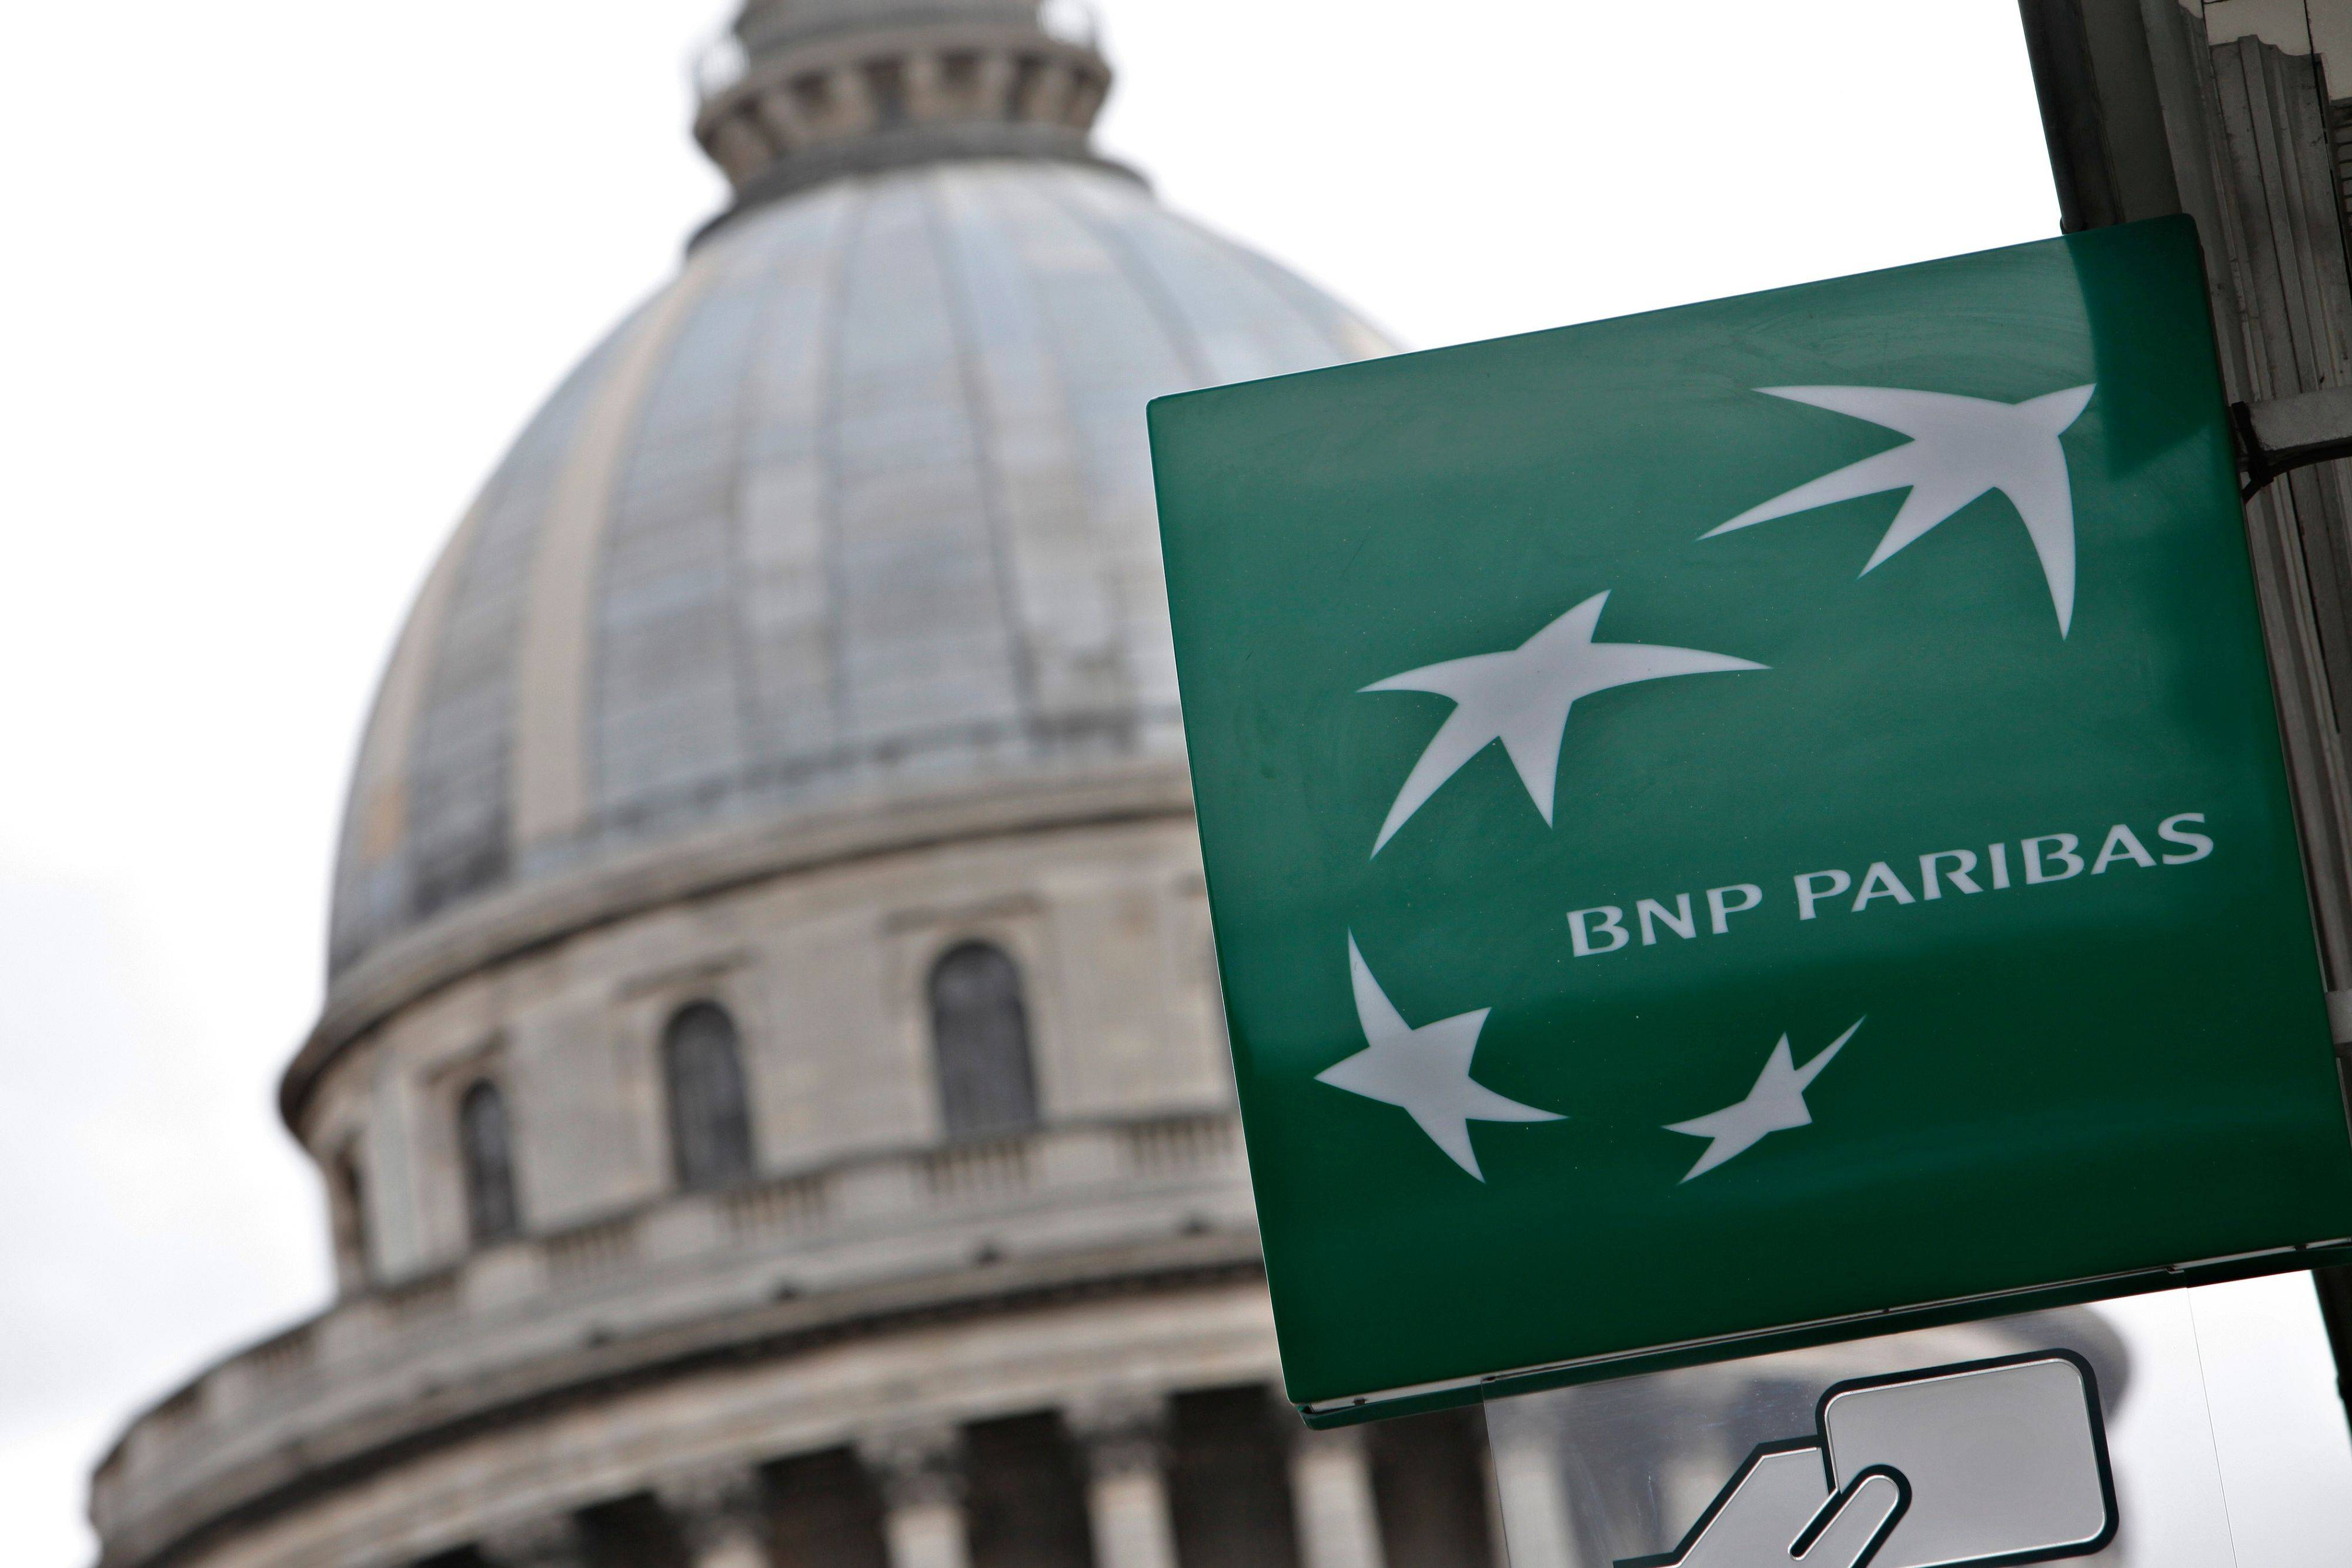 The Banque Nationale de Paris (BNP) is seen in Paris on Tuesday. French banks have been at the center of the European crisis because they hold a significant amount of debt from Greece.